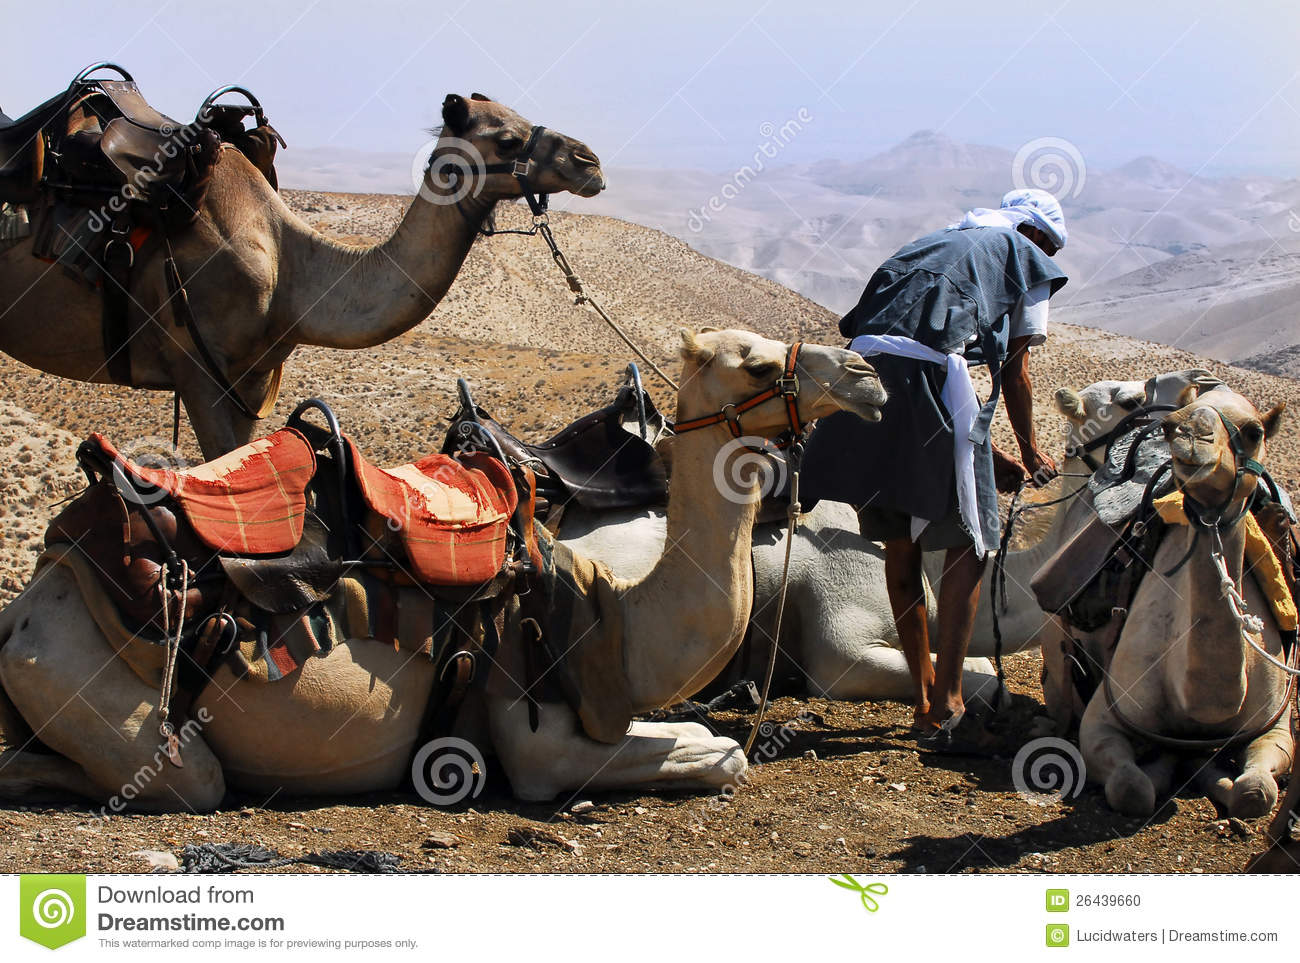 Camel ride in the Judean Desert